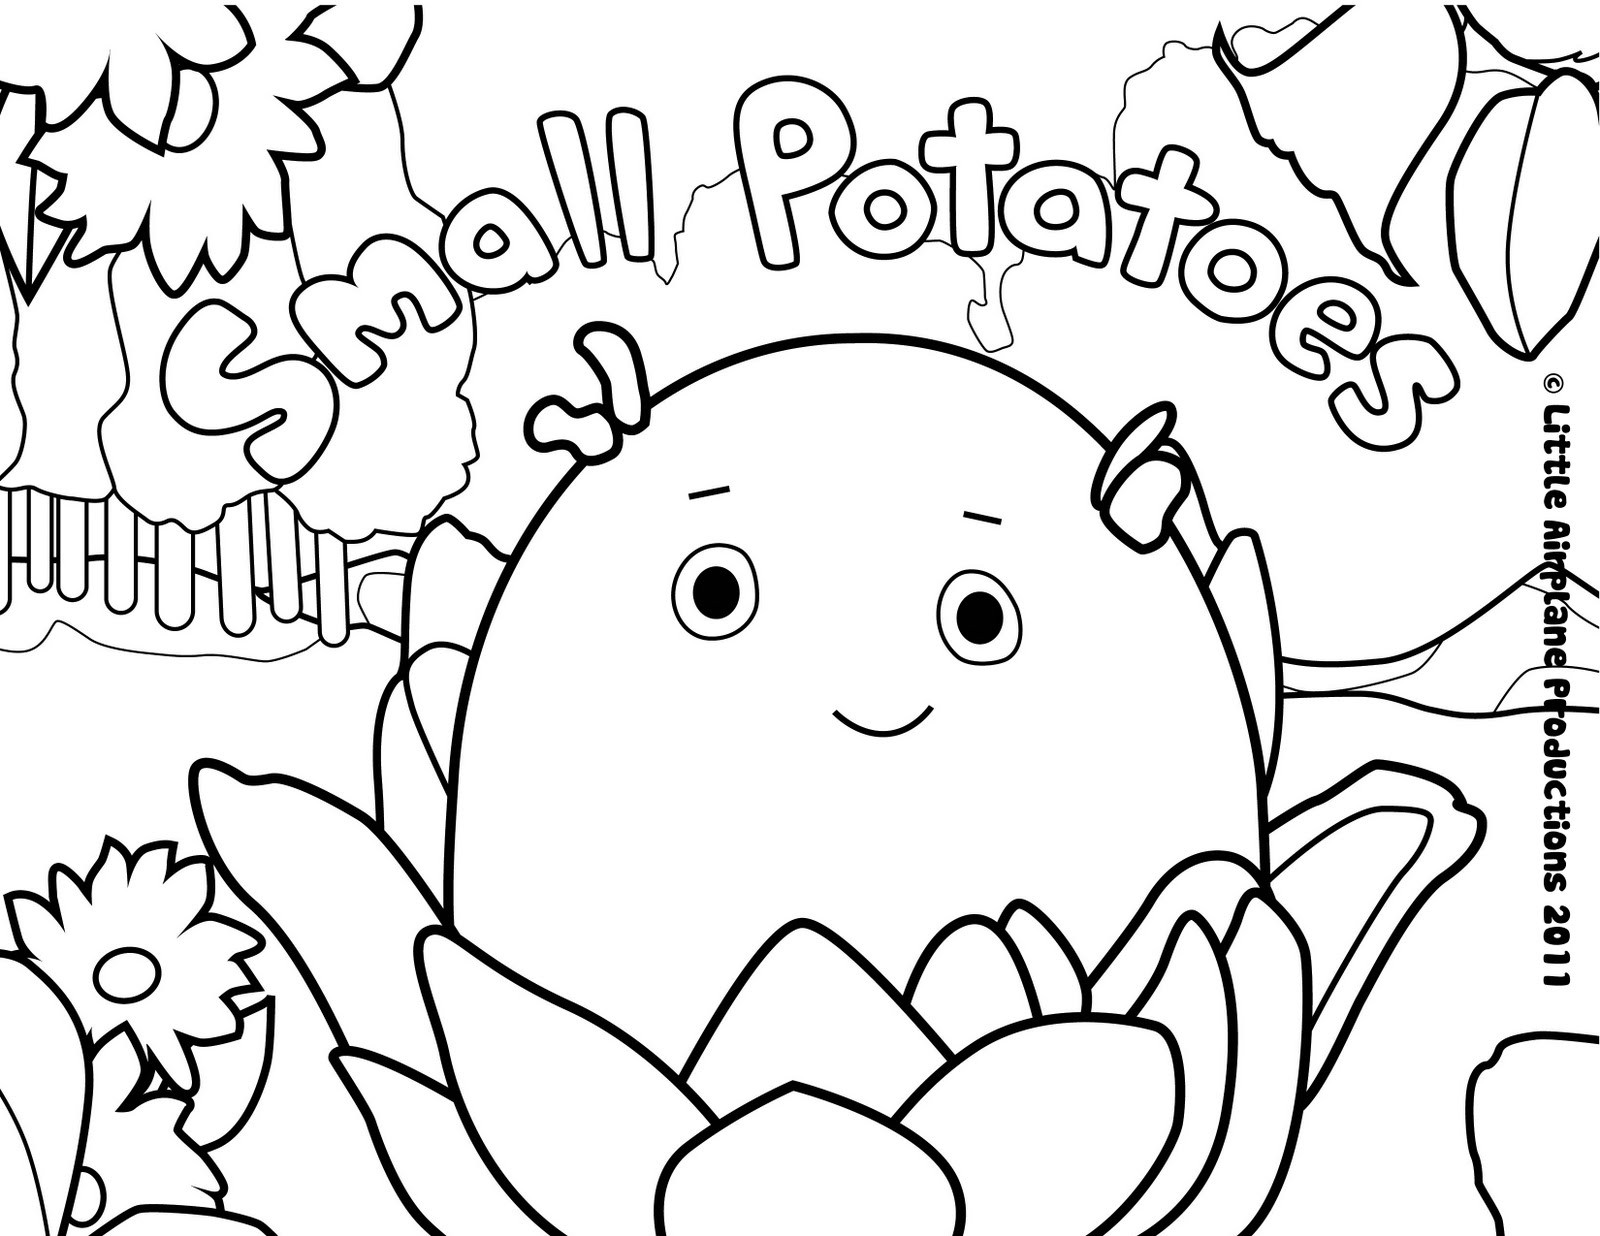 Small Coloring Pages  erica kepler Small Potatoes Coloring Pages